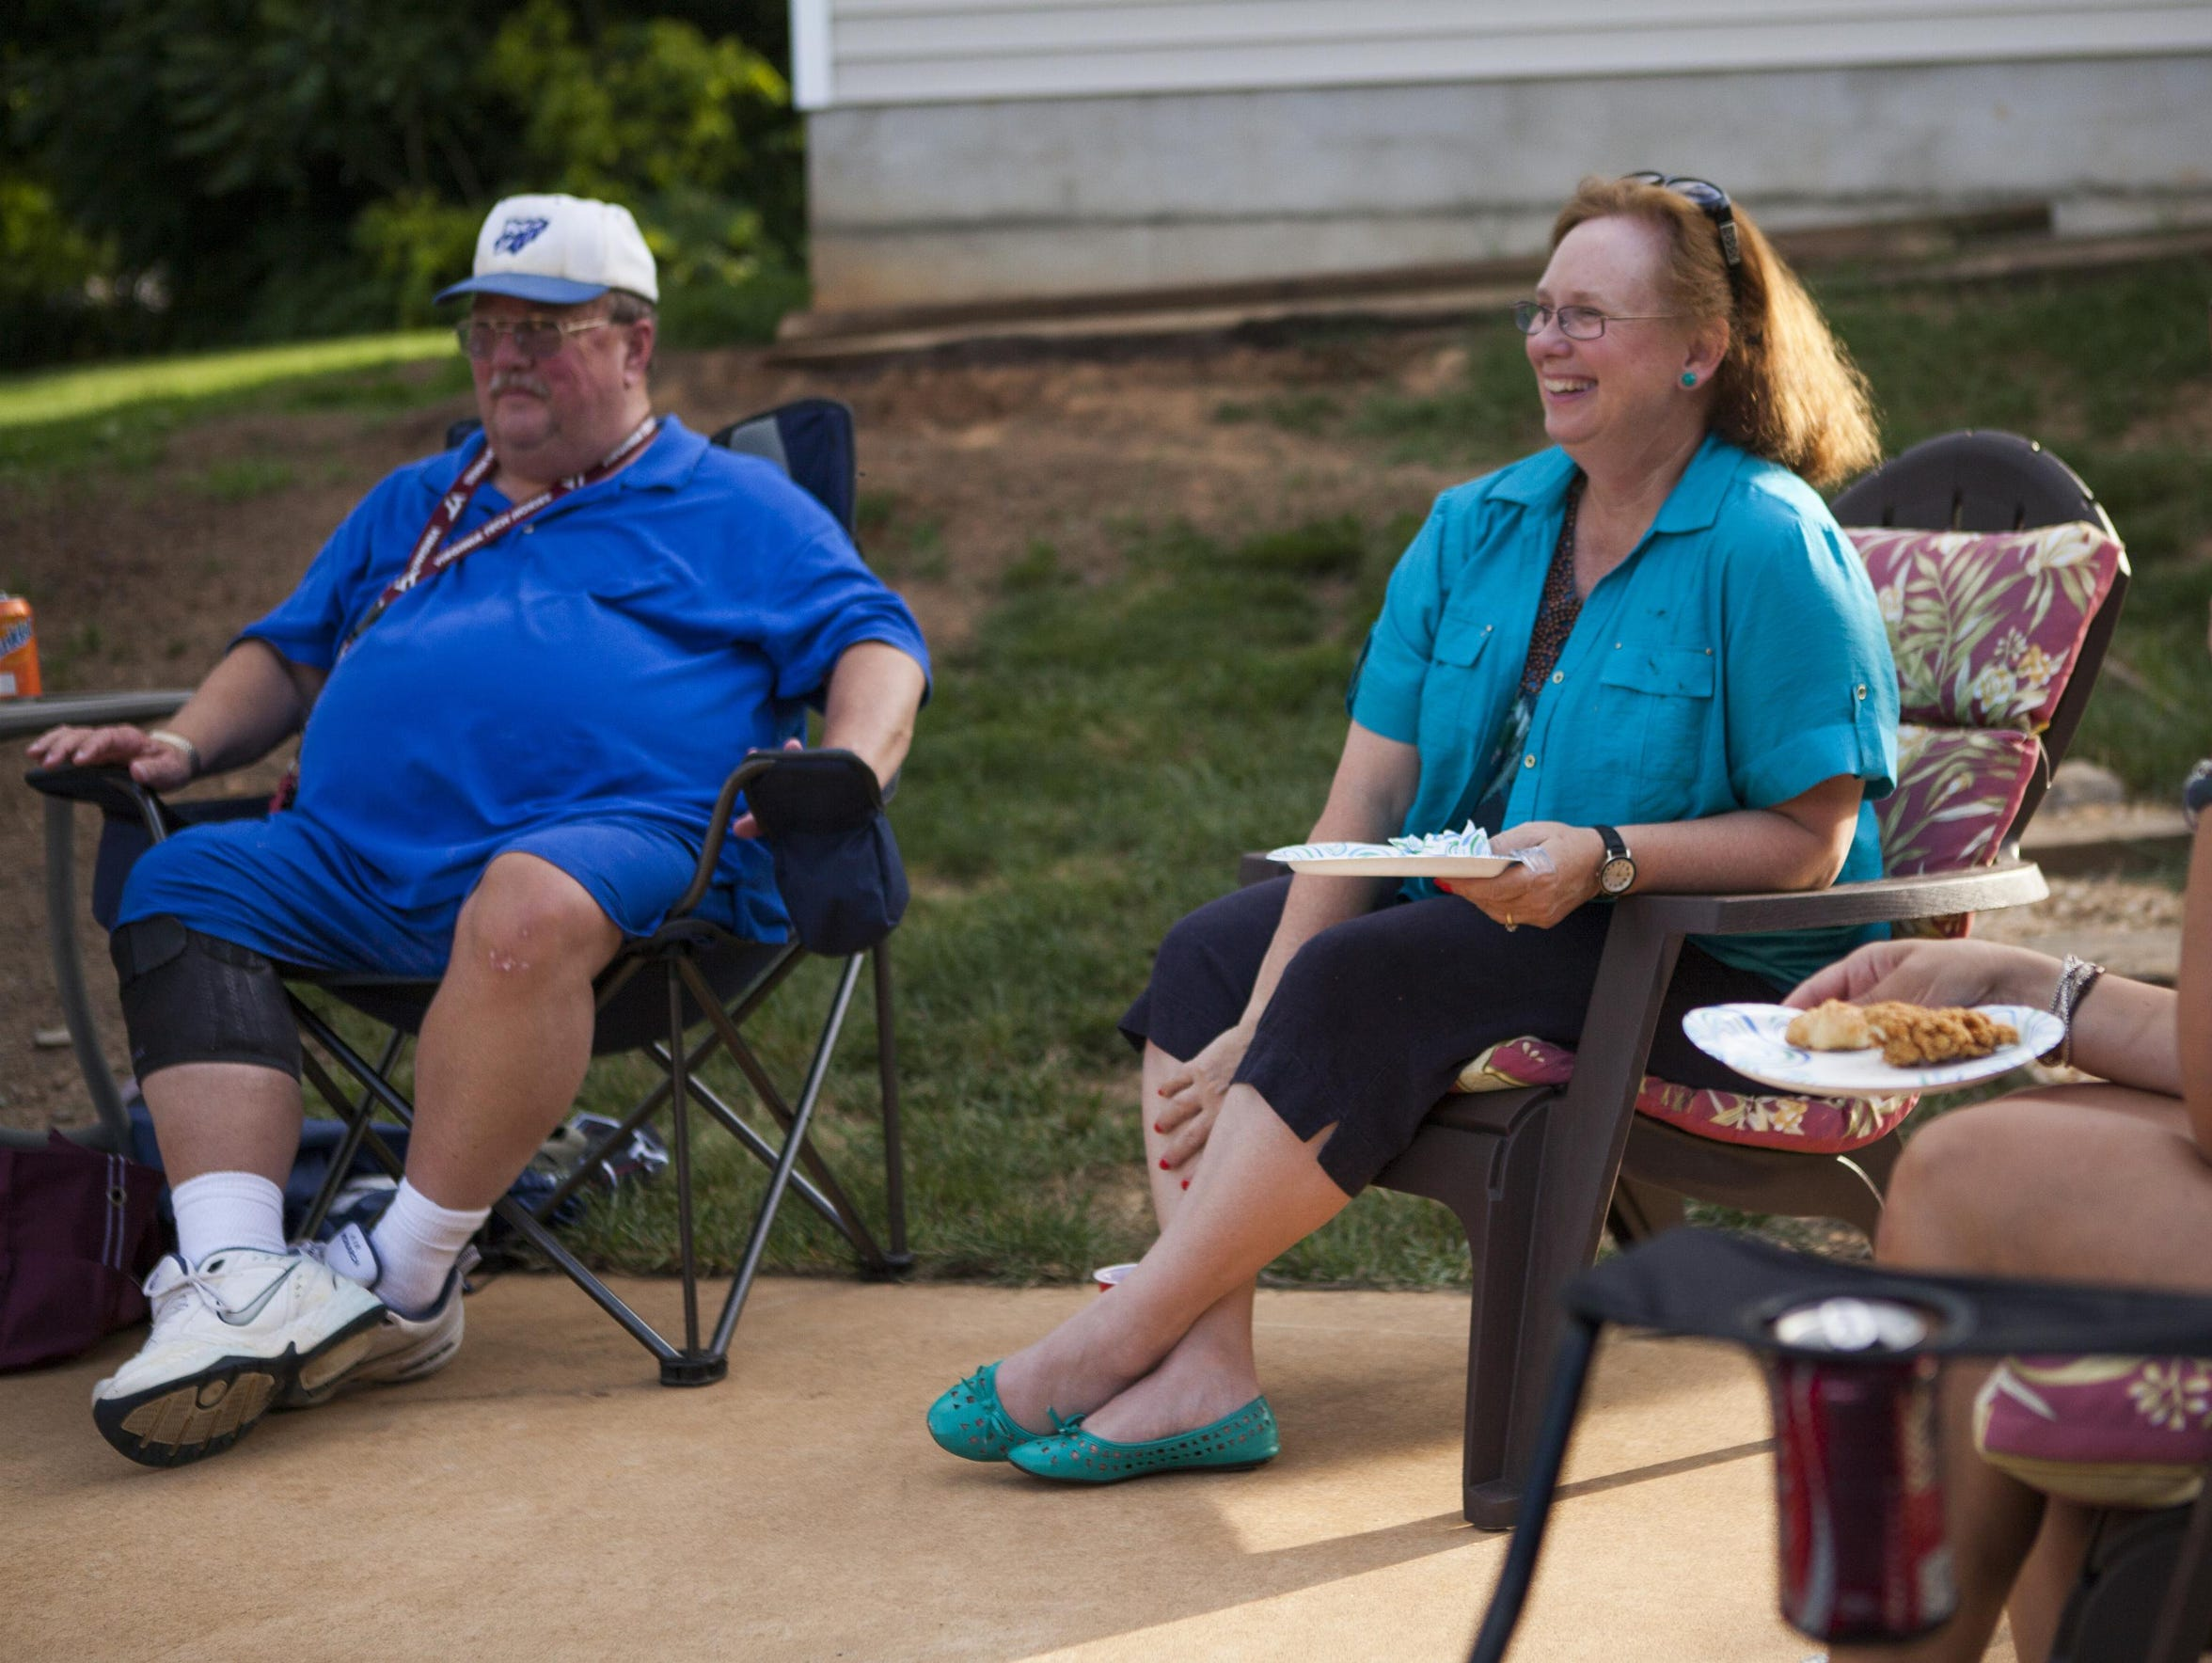 Bonnie Ball, center, sits beside her husband Ron Ball